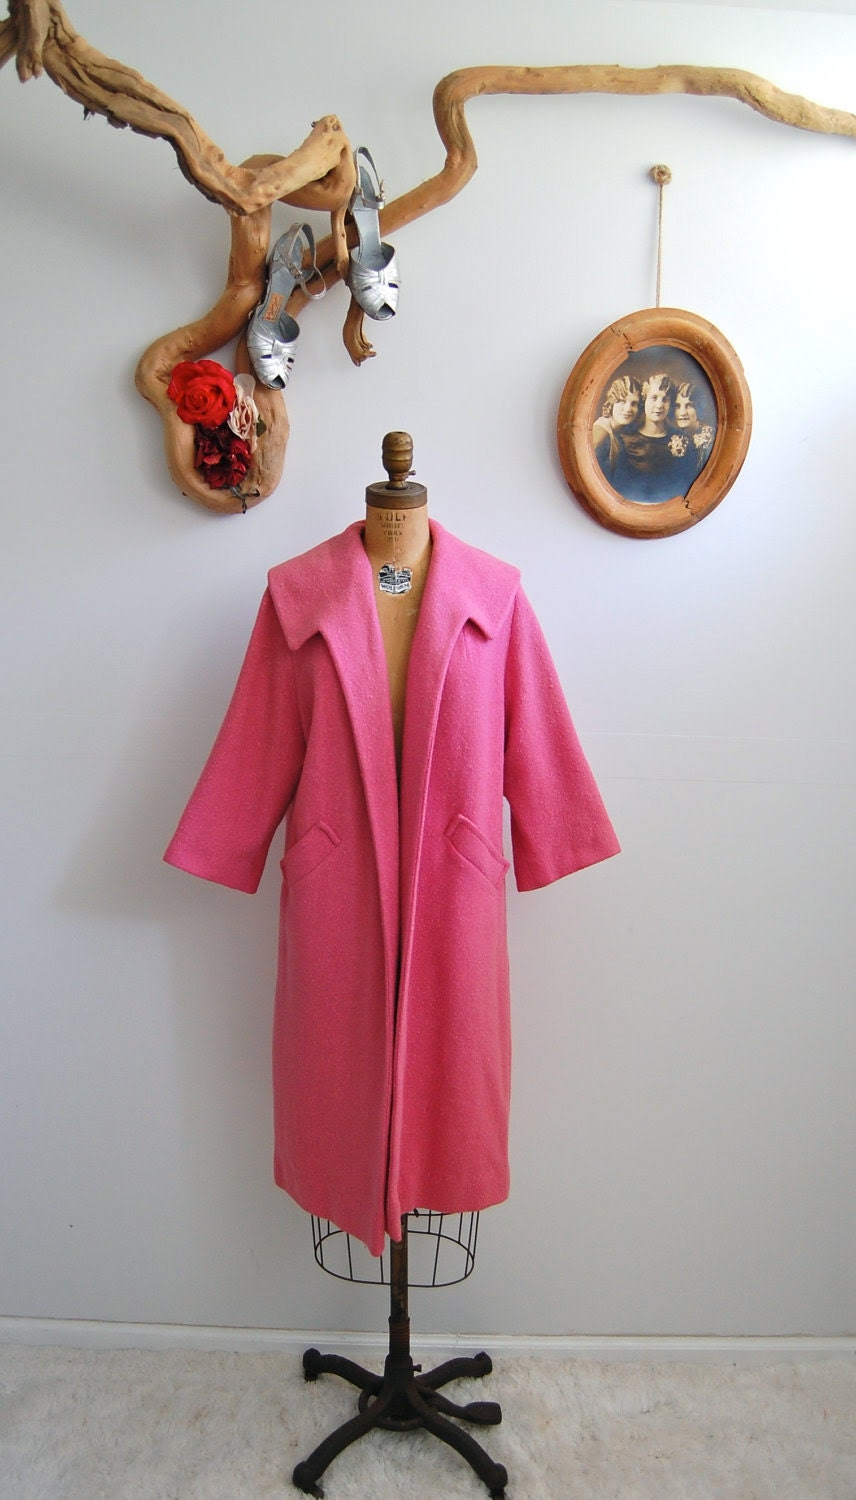 Vintage 1950s Coat - 50s Pink Clutch Coat - The Dahlia